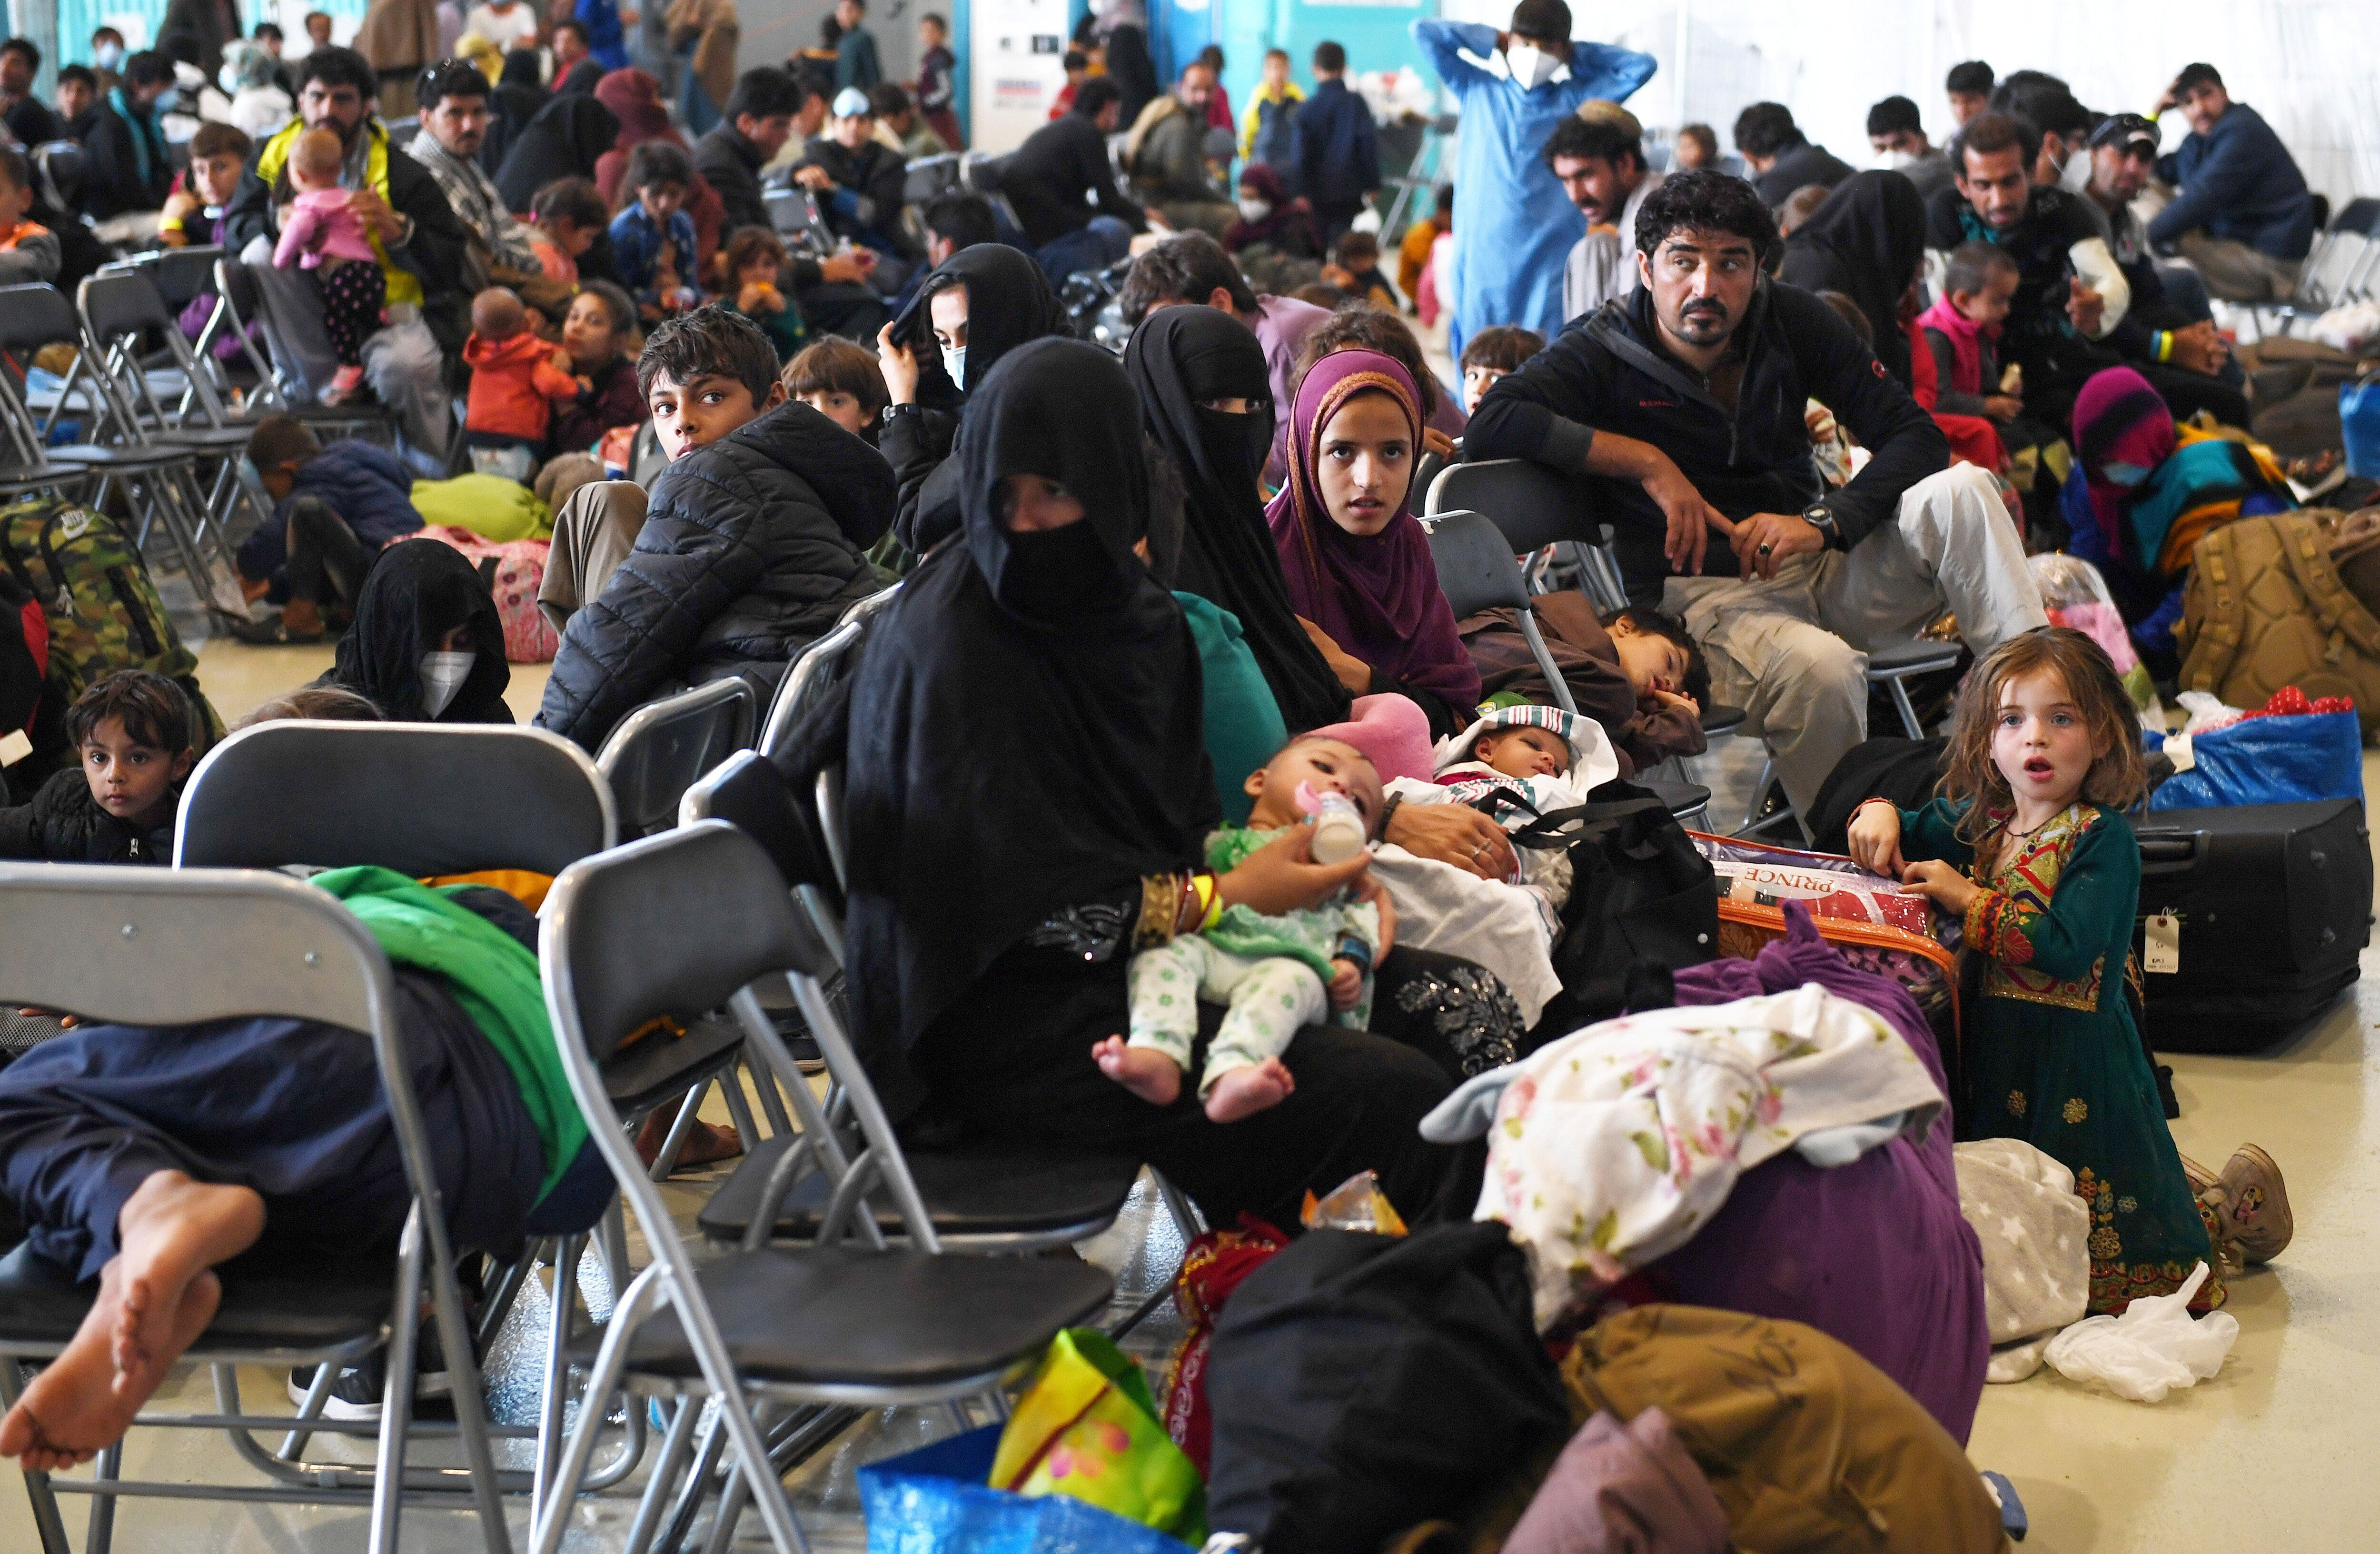 Afghan refugees are processed inside Hangar 5 at Ramstein Air Base in Germany on Sept. 8, 2021.